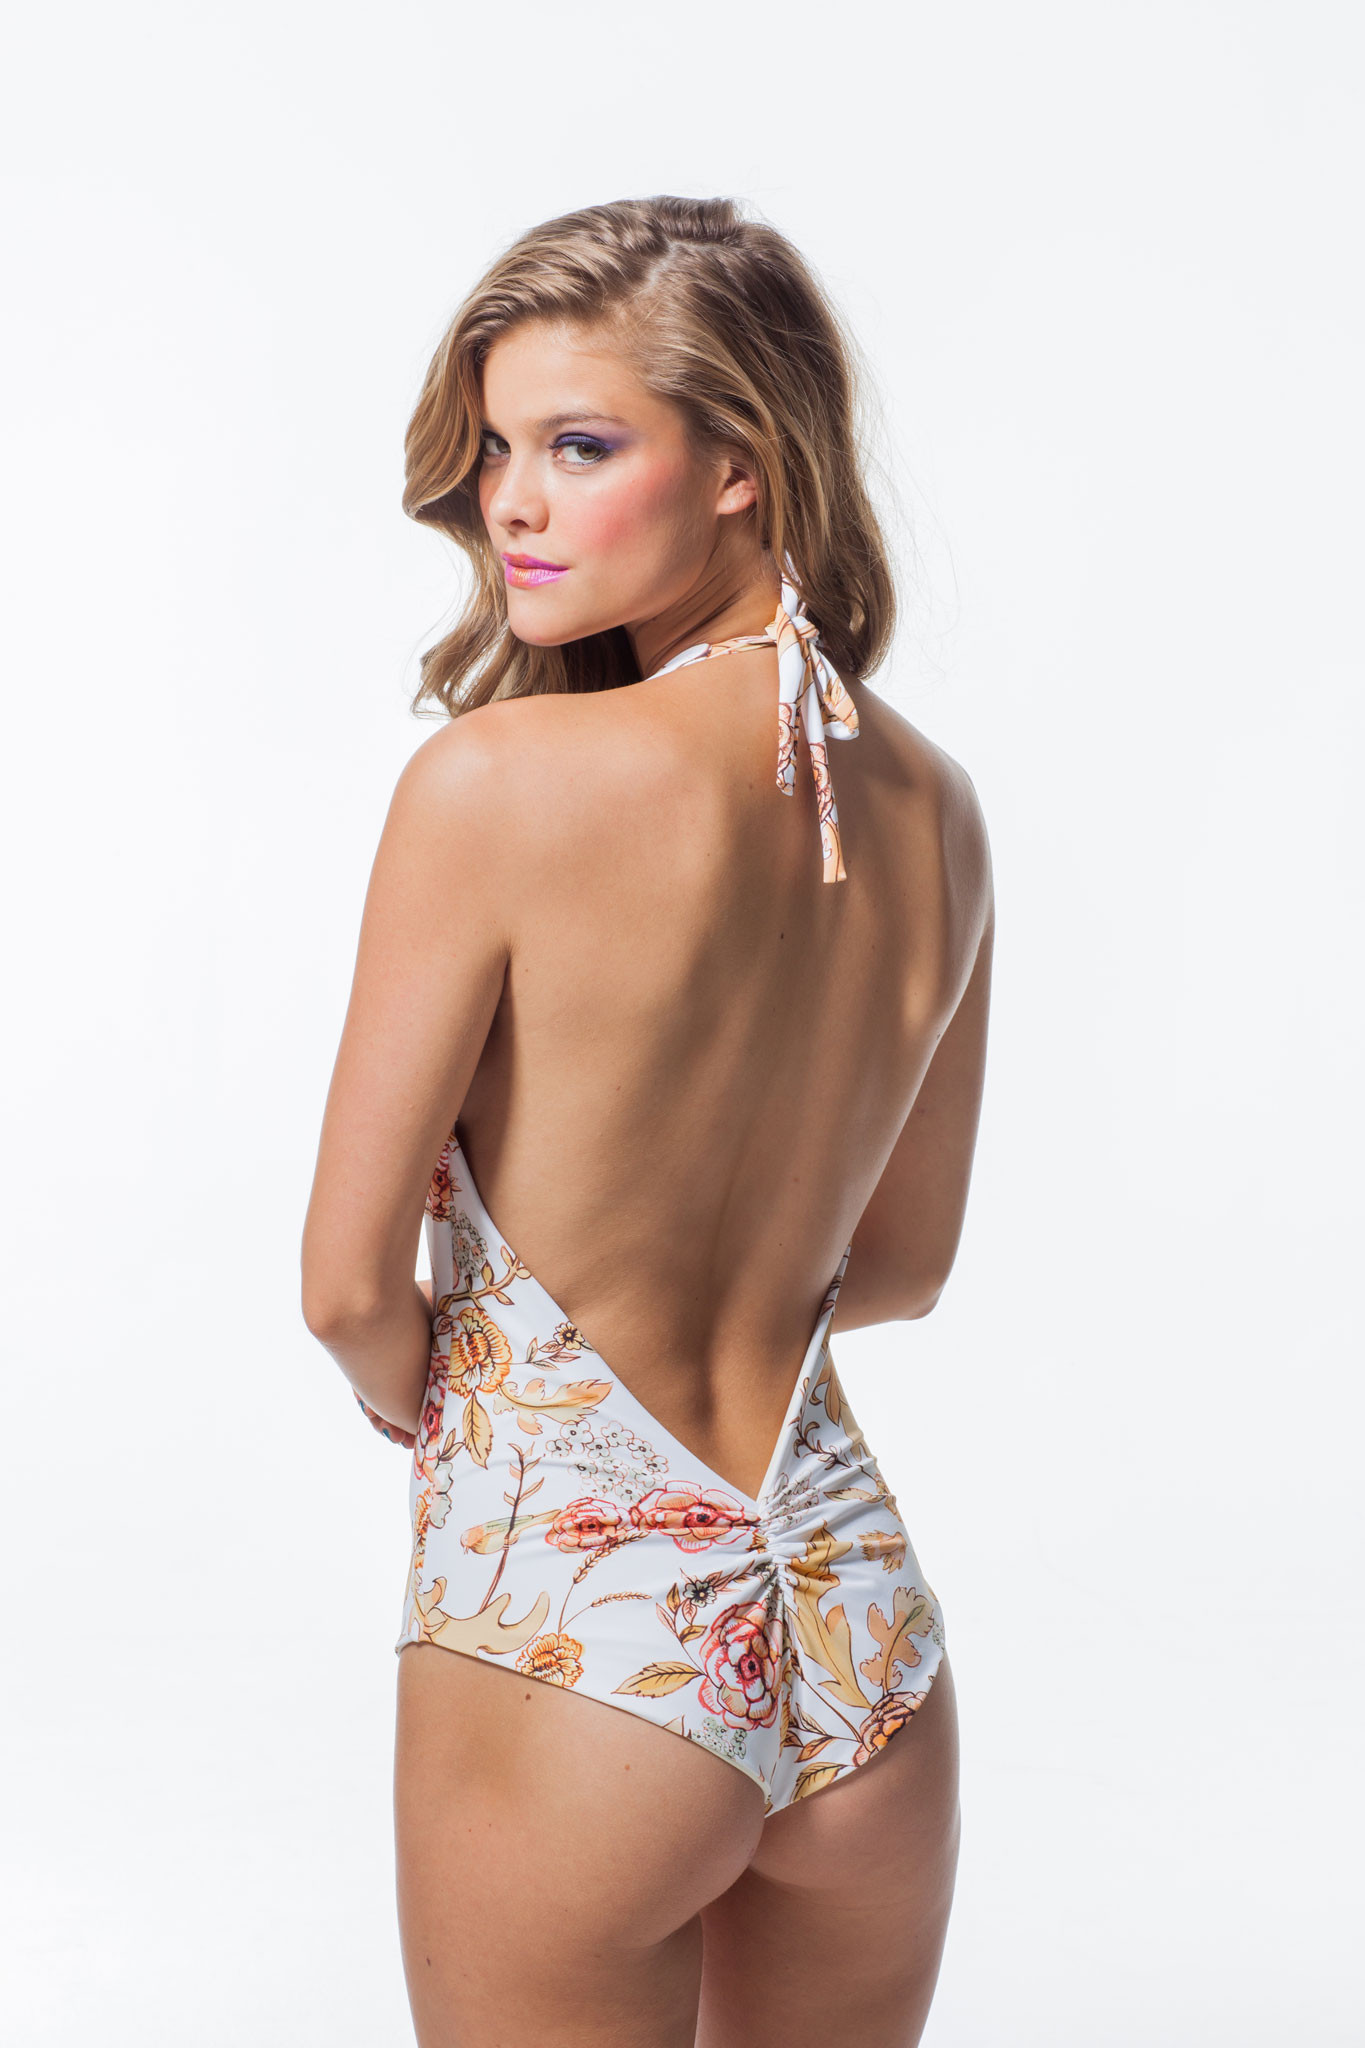 nina-agdal-la-boheme-by-martha-rey-january-2014-19